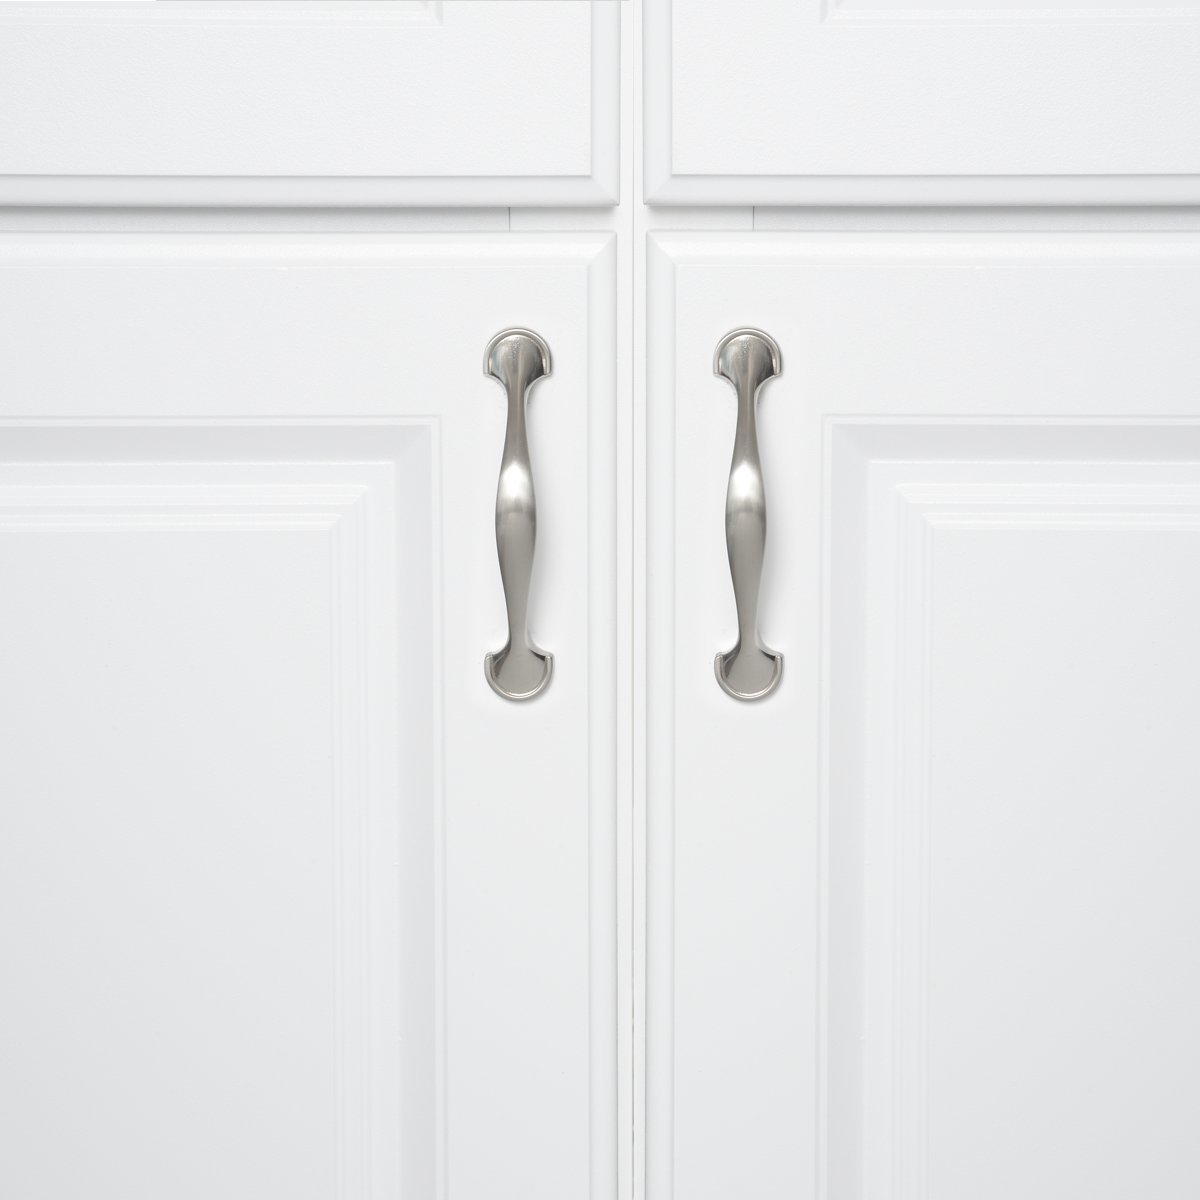 3 Hole Center Basics Rounded Foot Cabinet Handle 4.63 Length 10-Pack Satin Nickel